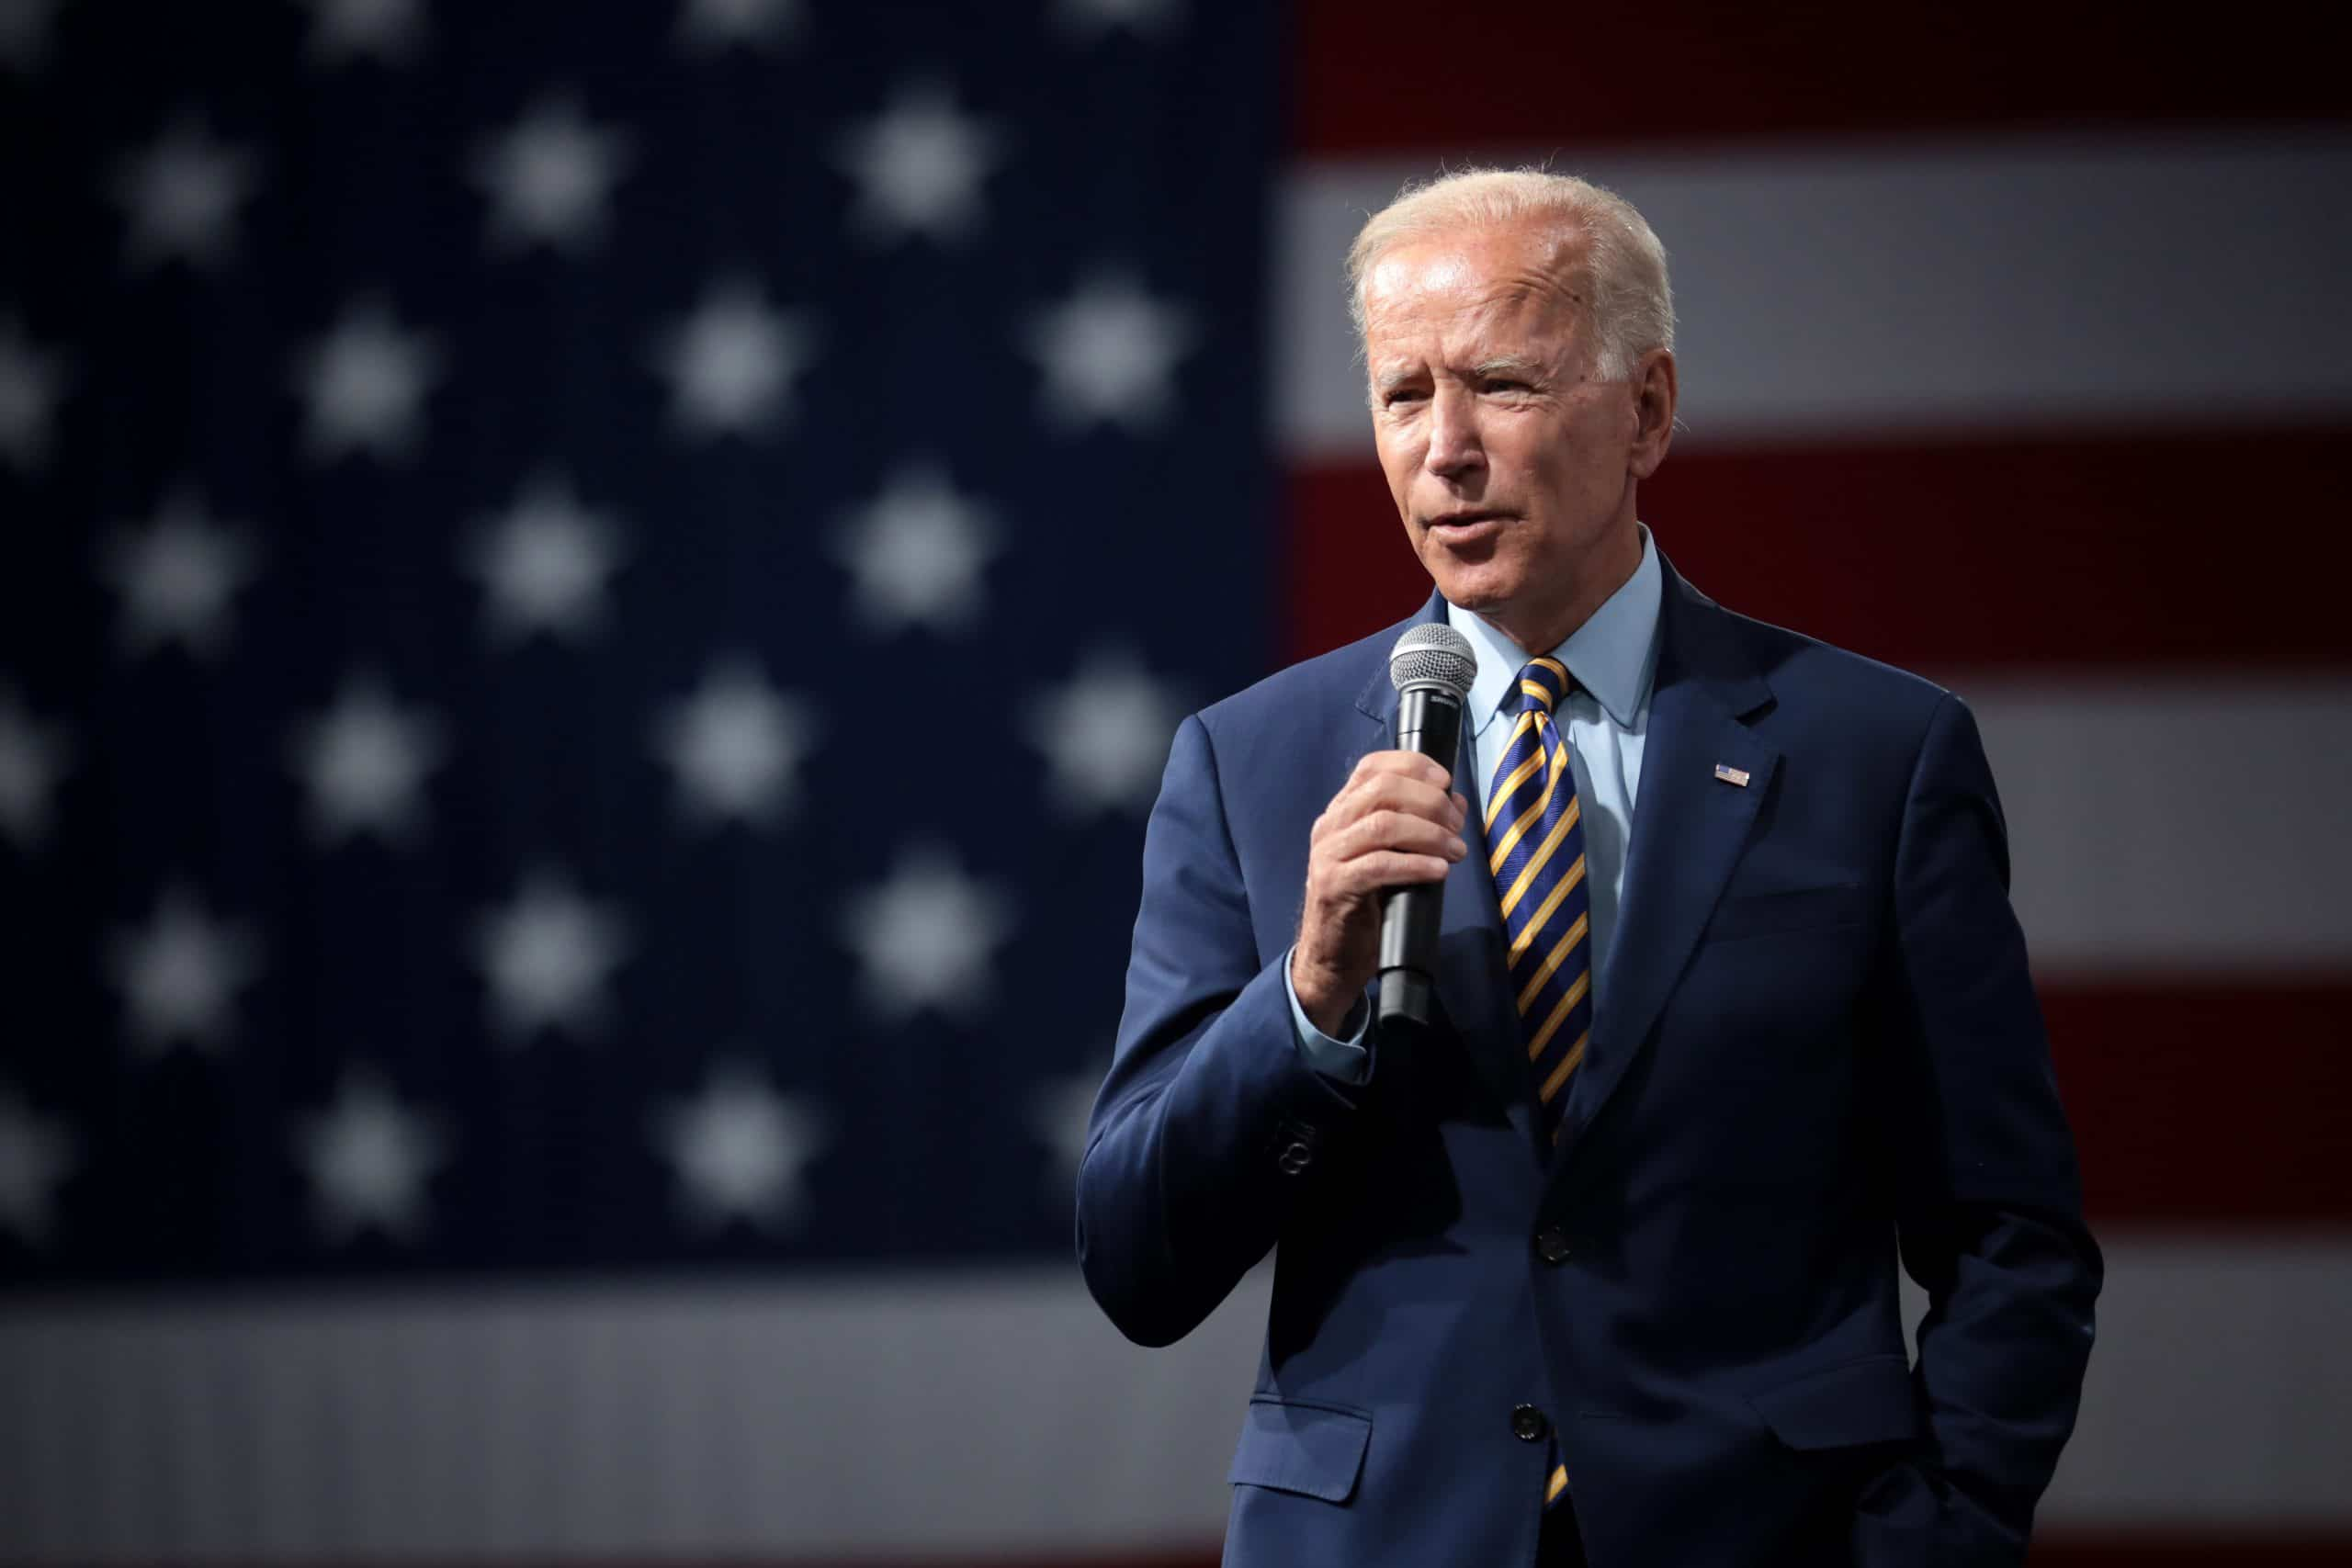 Biden's Drug Policies Are A Small Step In The Right Direction